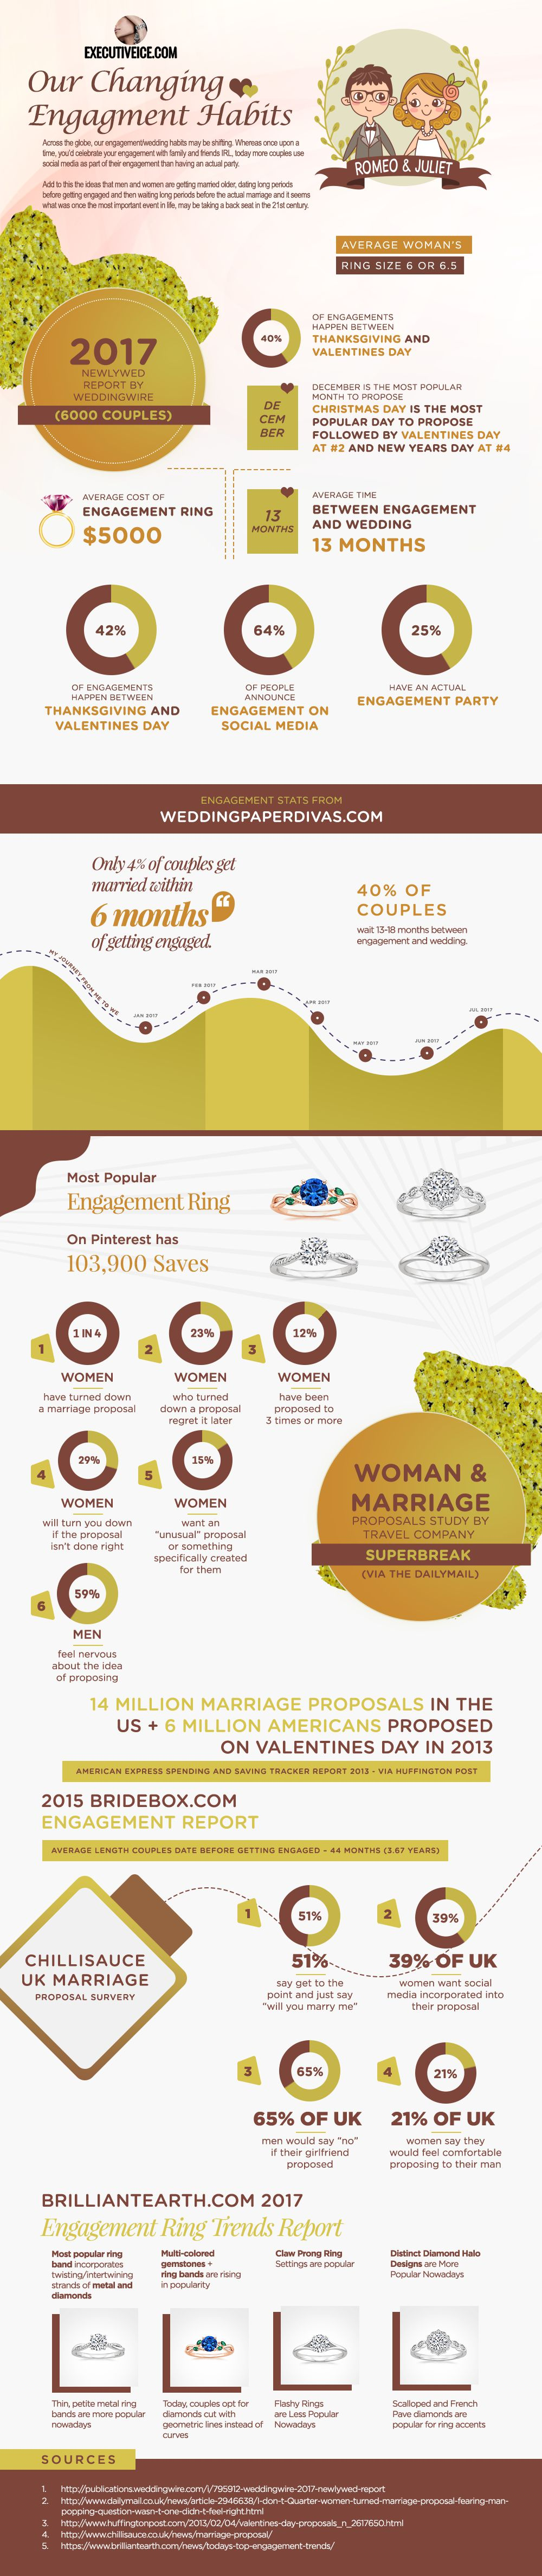 Our changing engagementmarriage habits in lifestyle